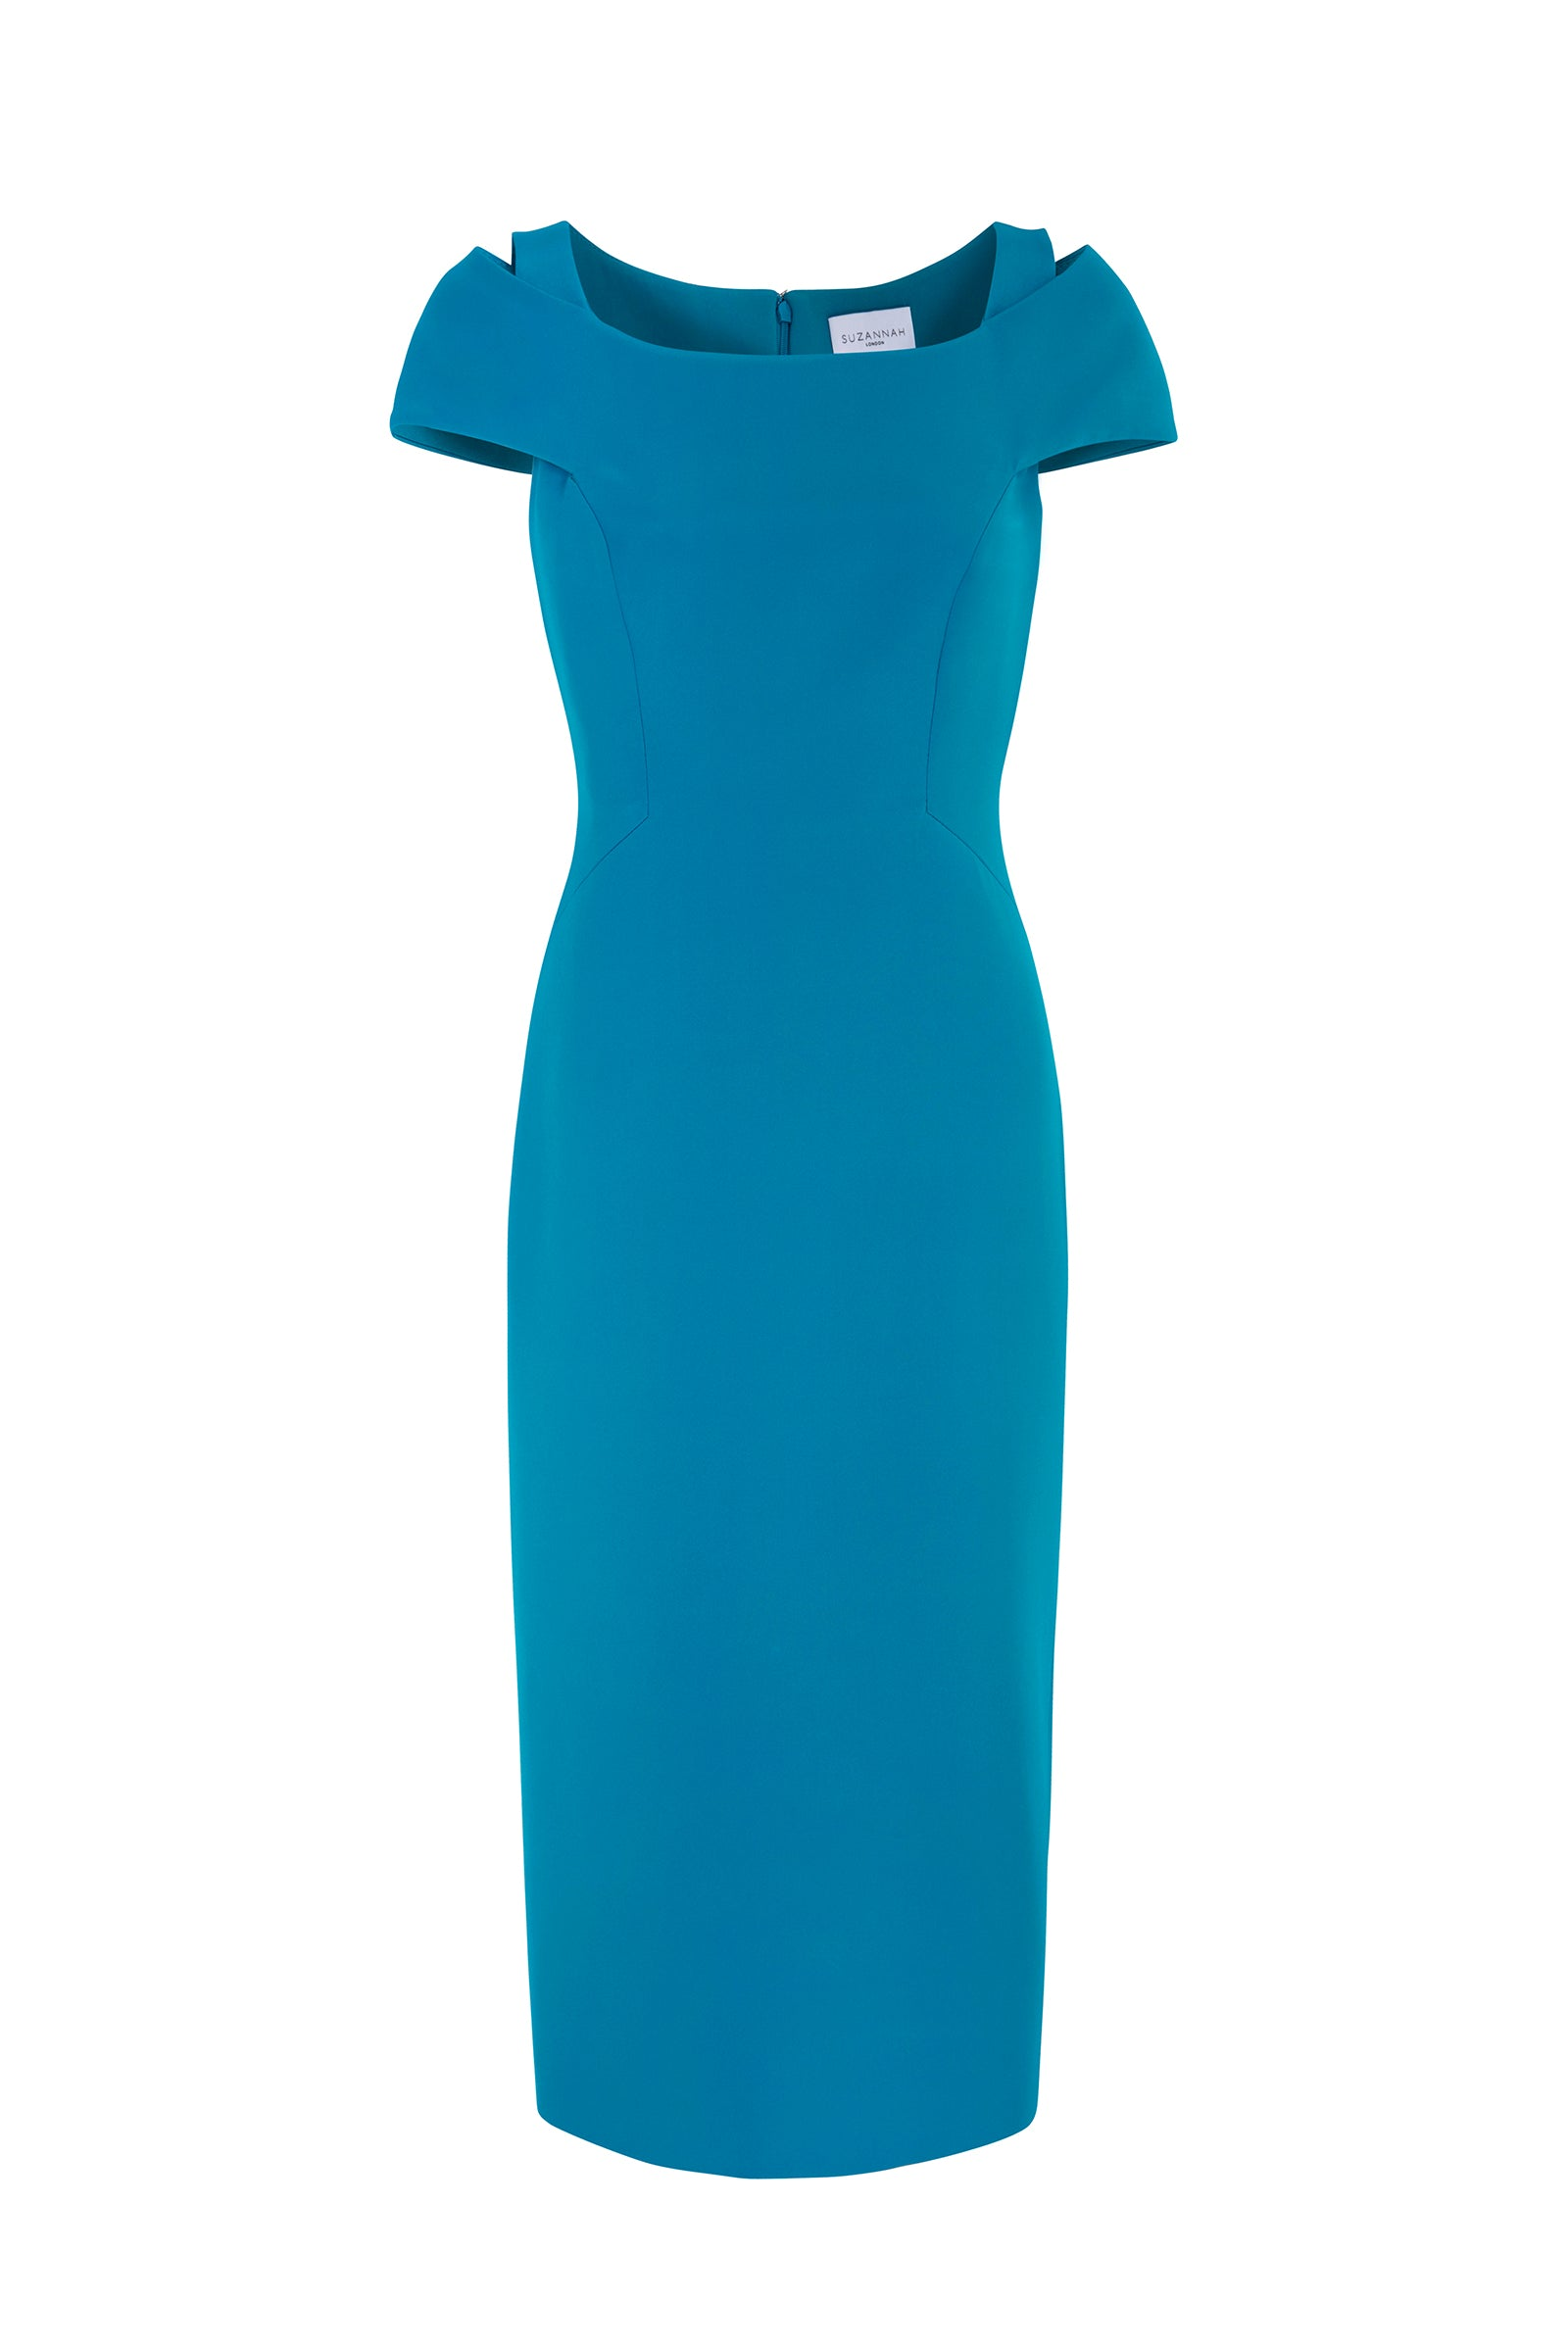 Colette Silk Crepe Cocktail Shift Dress Turquoise